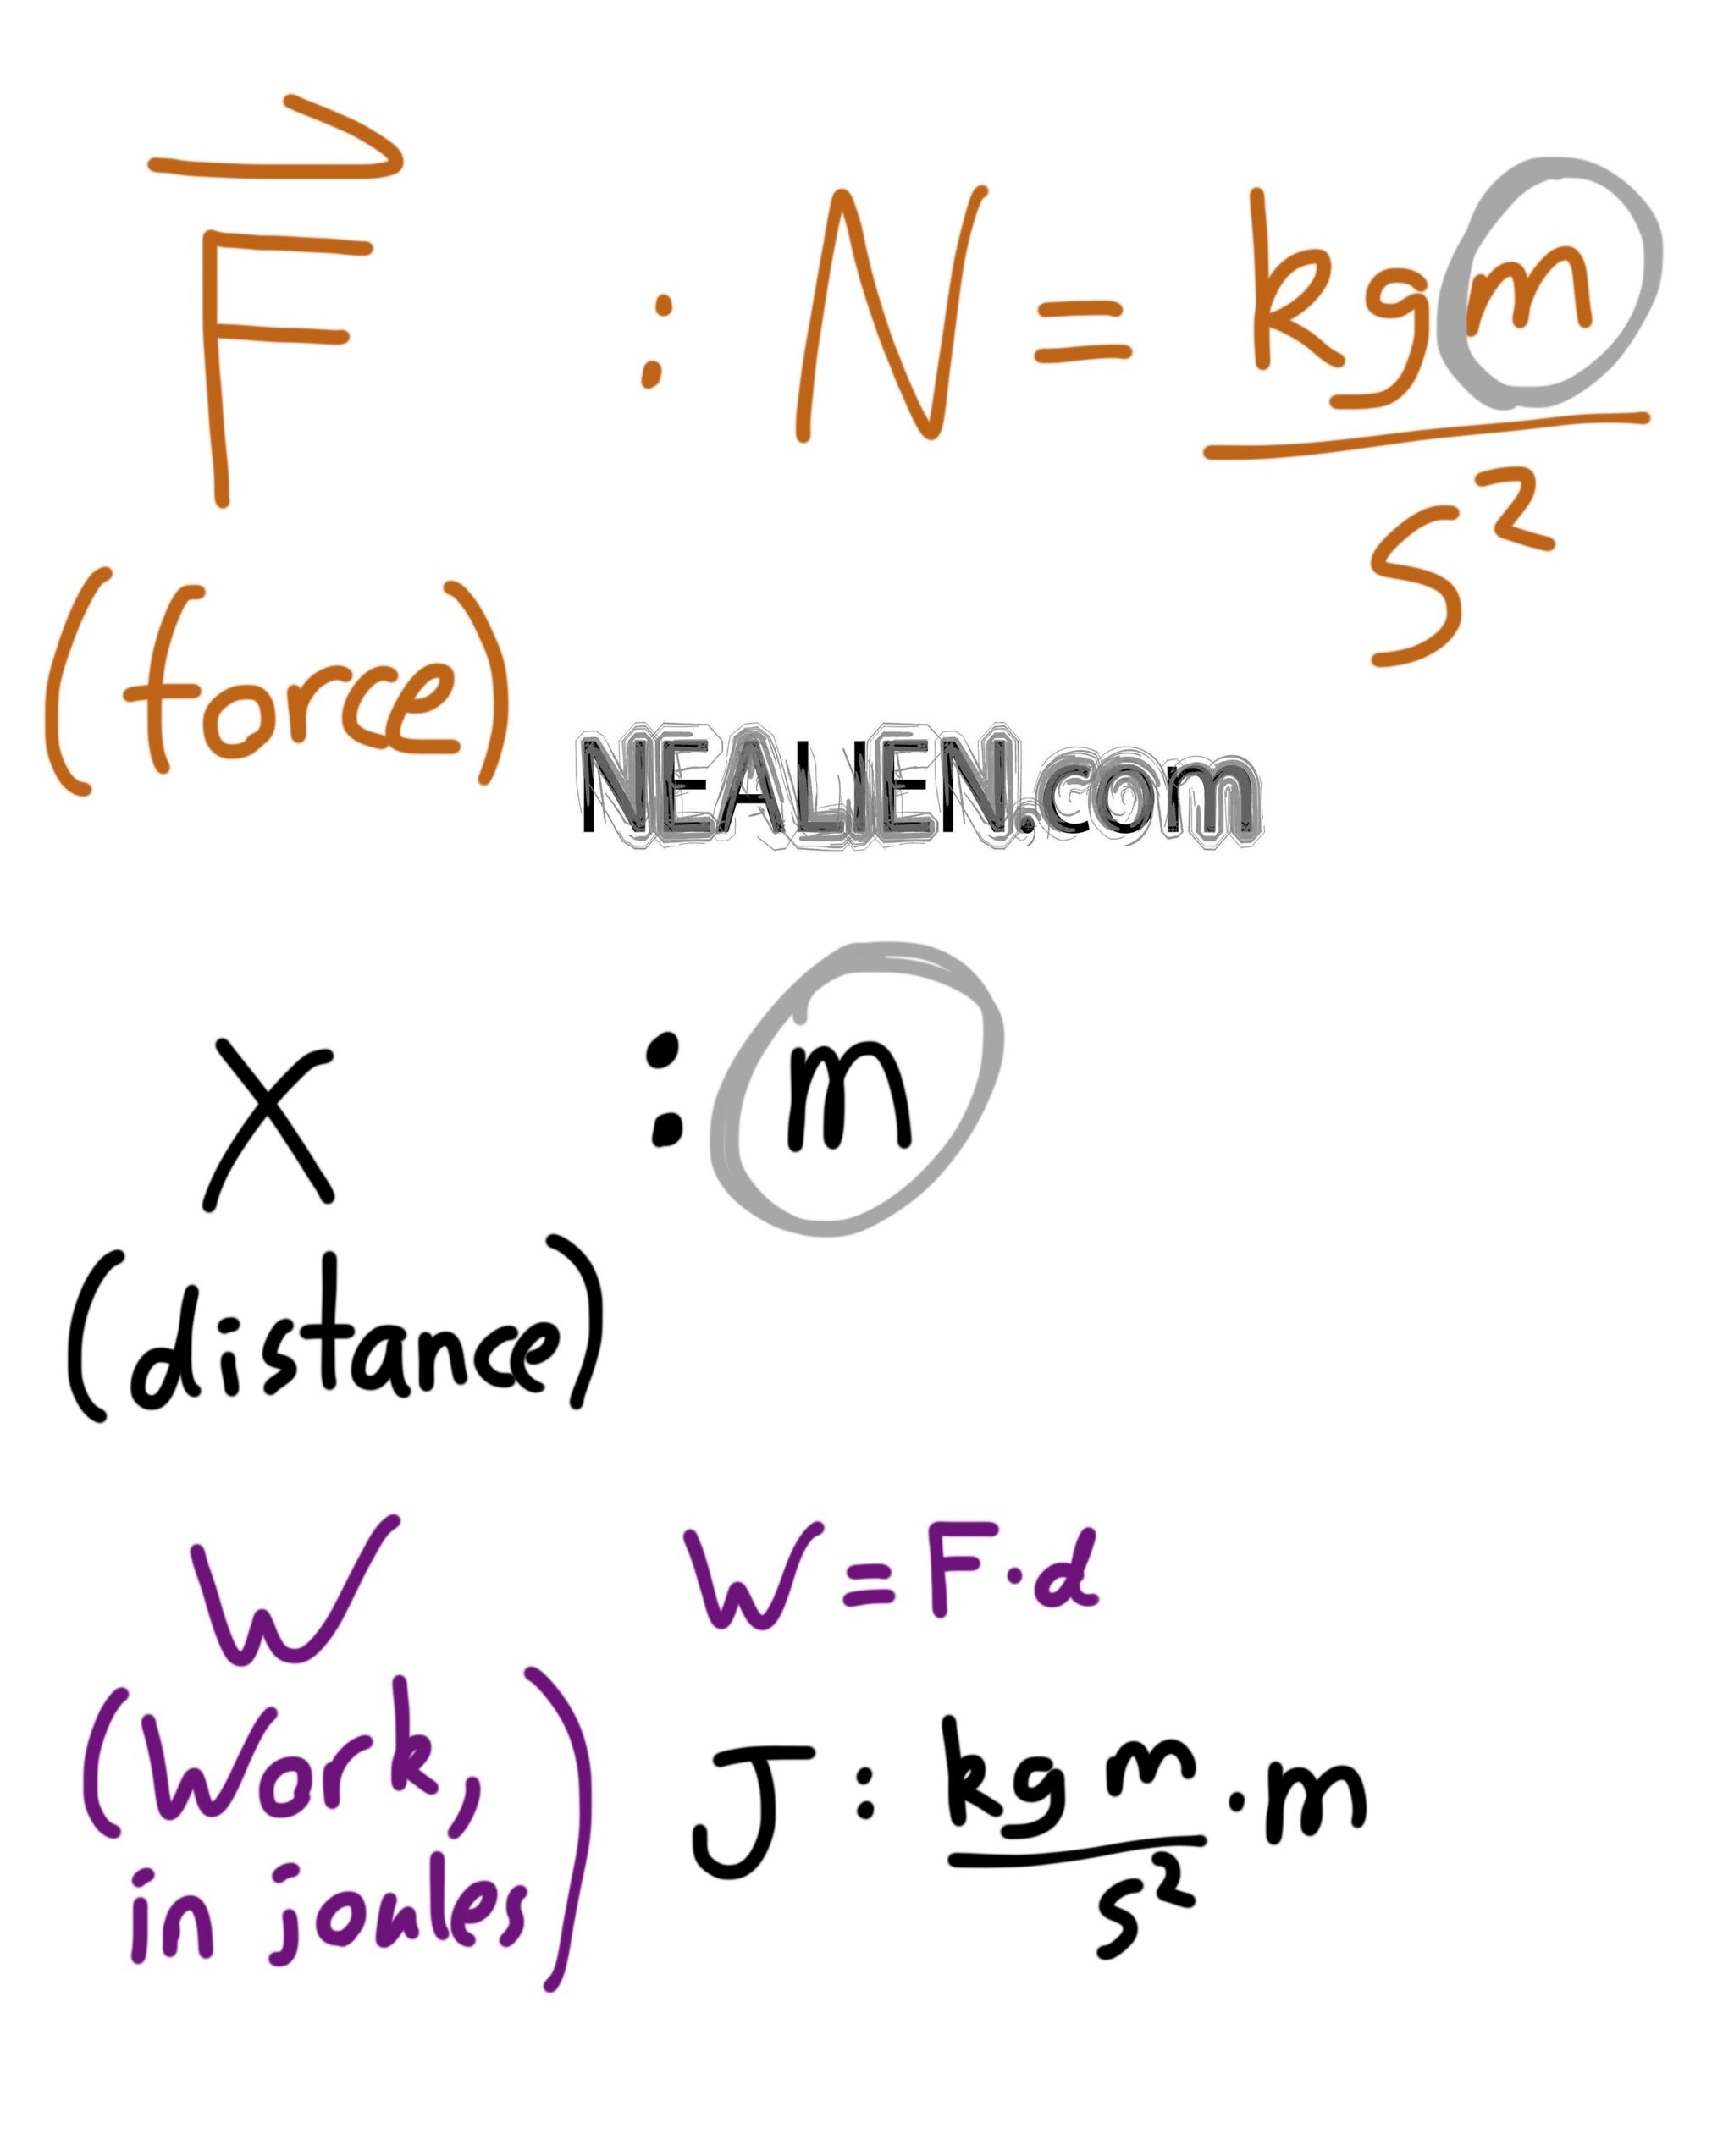 Newtons and Distance in an equation